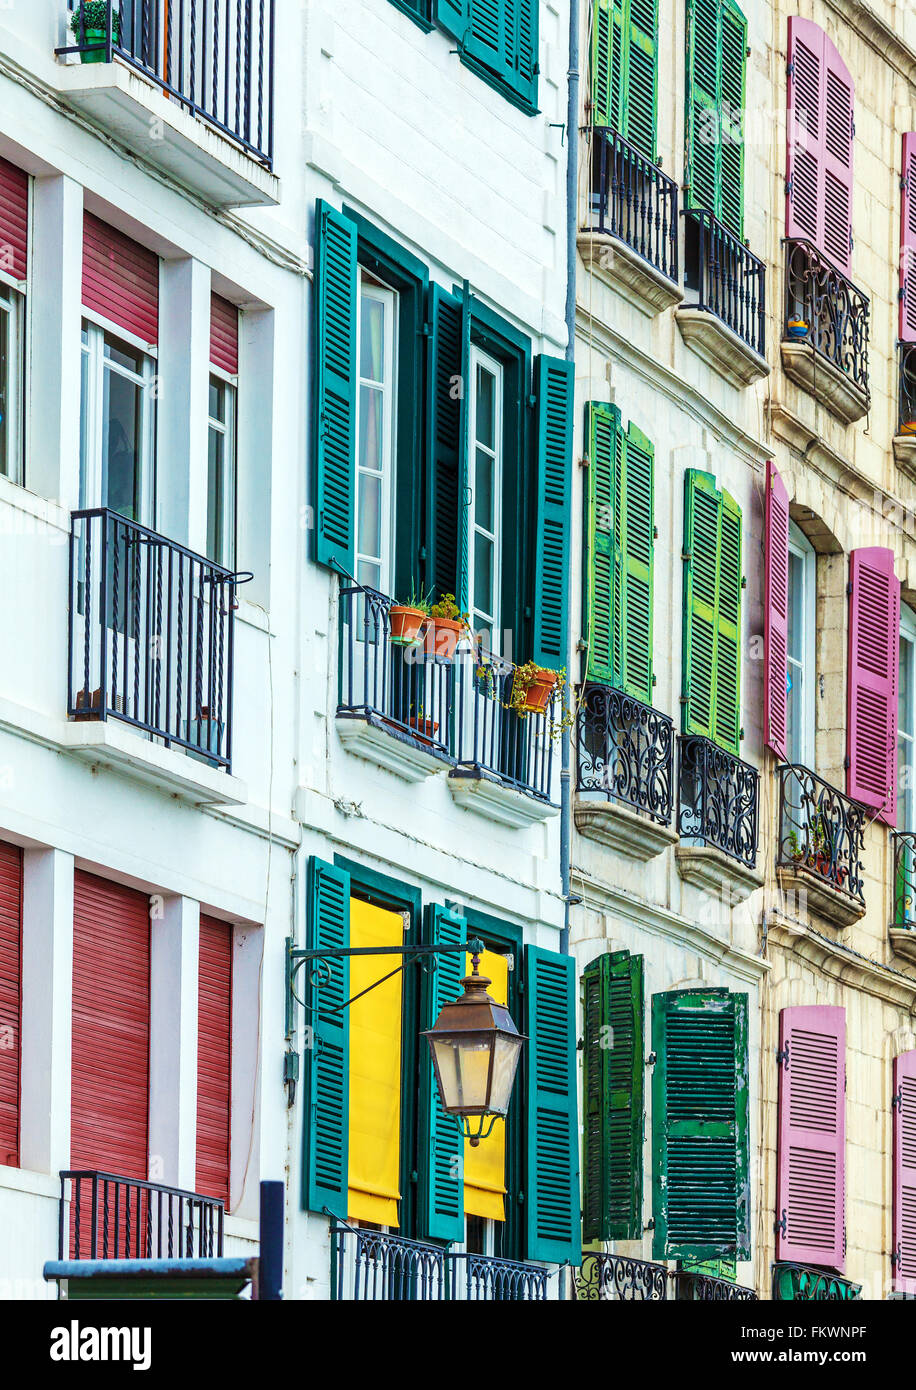 Colorful Shutters of Typical Old Homes, Bayonne, France - Stock Image